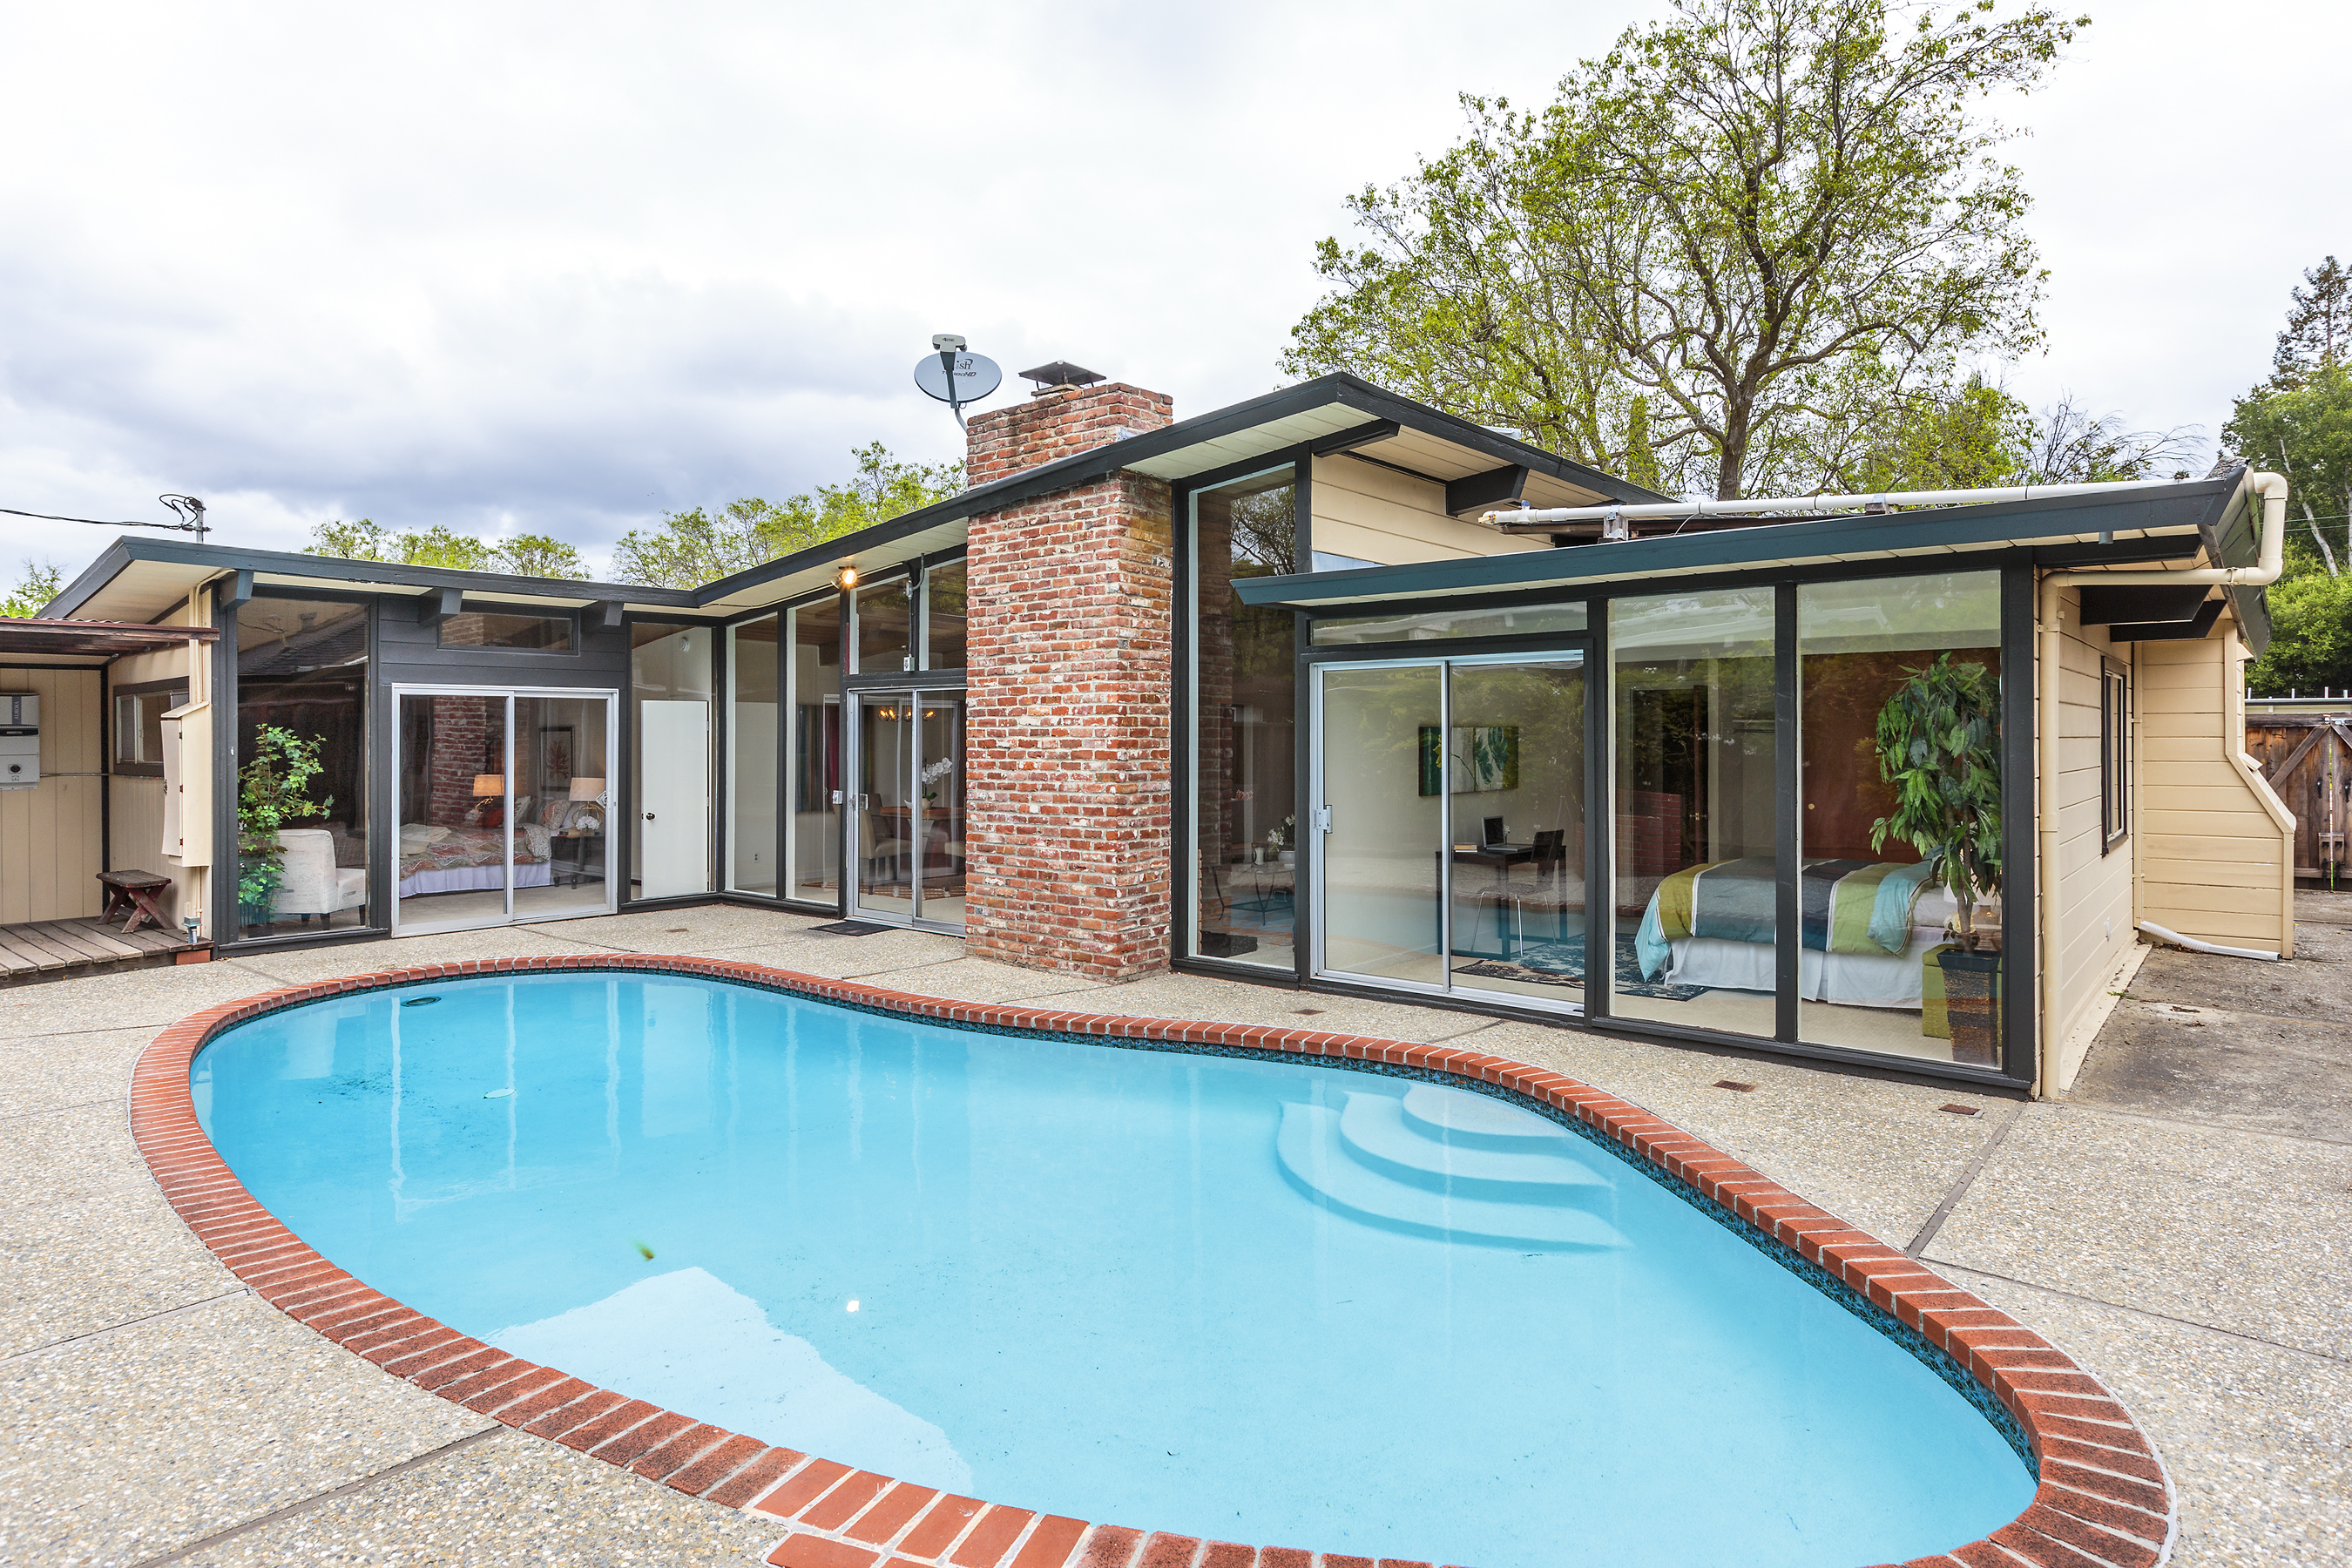 21-172-Atherwood-pool-high-res